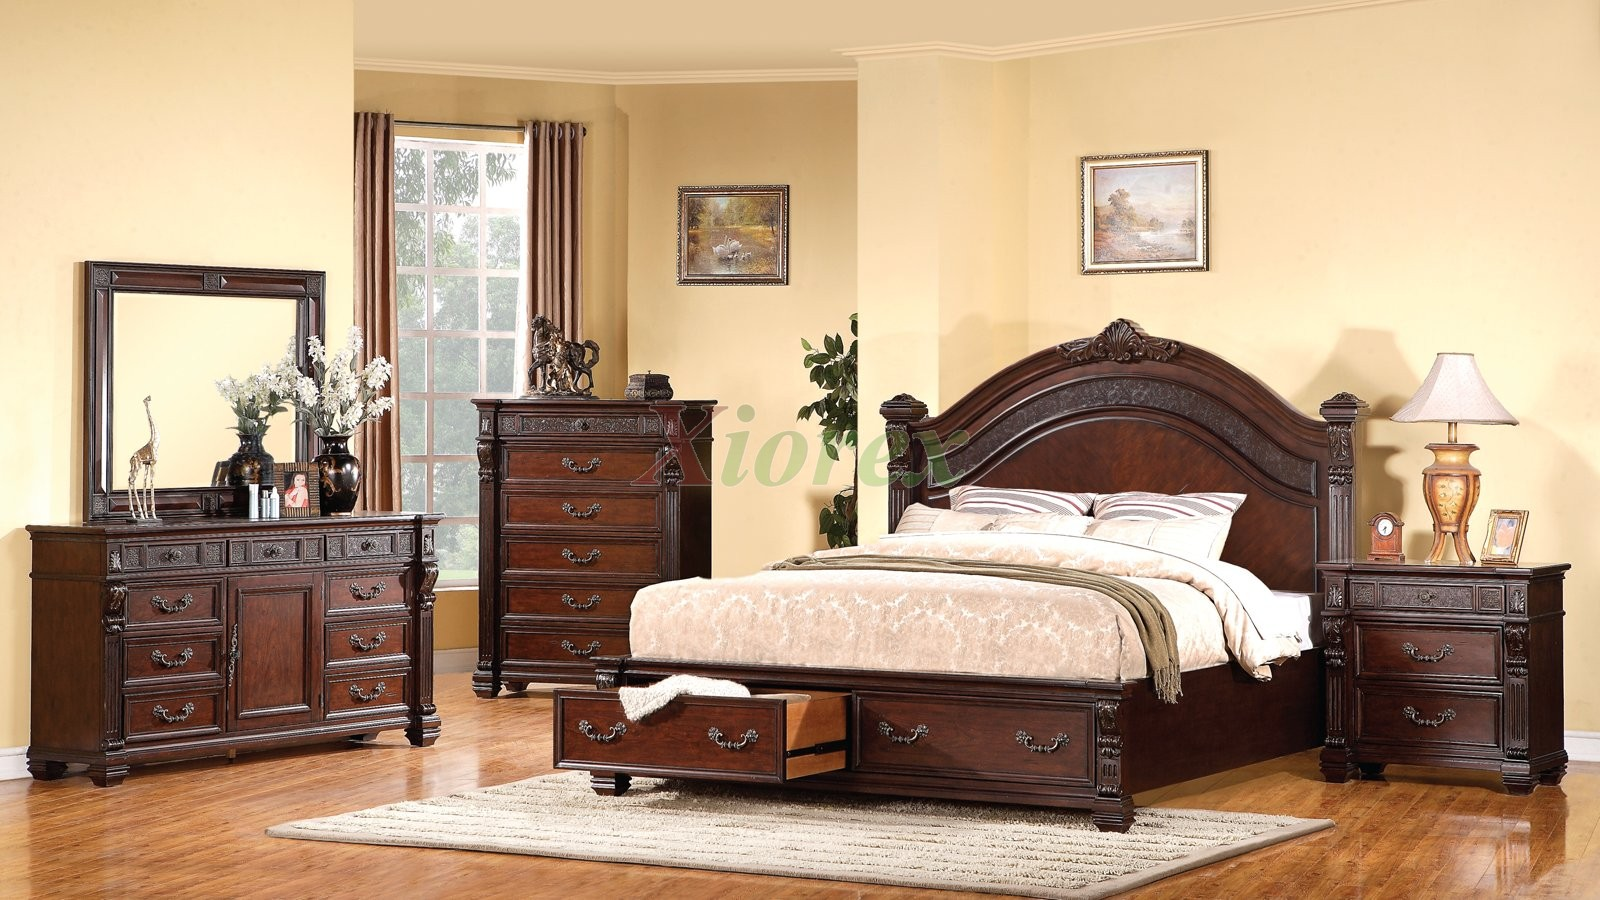 Impressive Bedroom Furniture Sets with Storage 1600 x 900 · 333 kB · jpeg